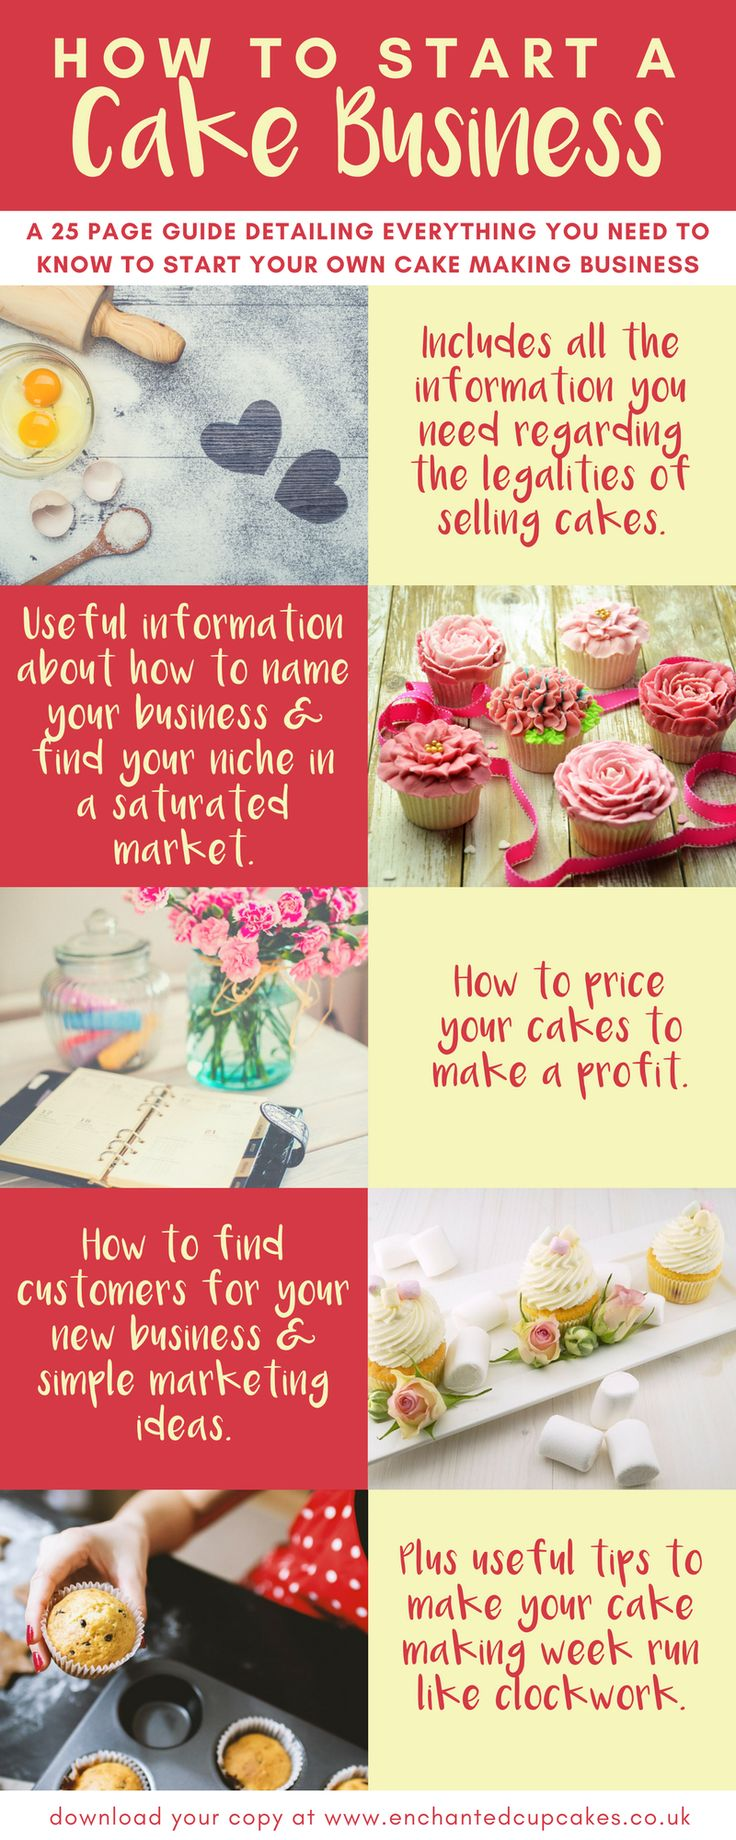 Cake Decorating Things Name : 25+ best ideas about Cake Business Names on Pinterest ...